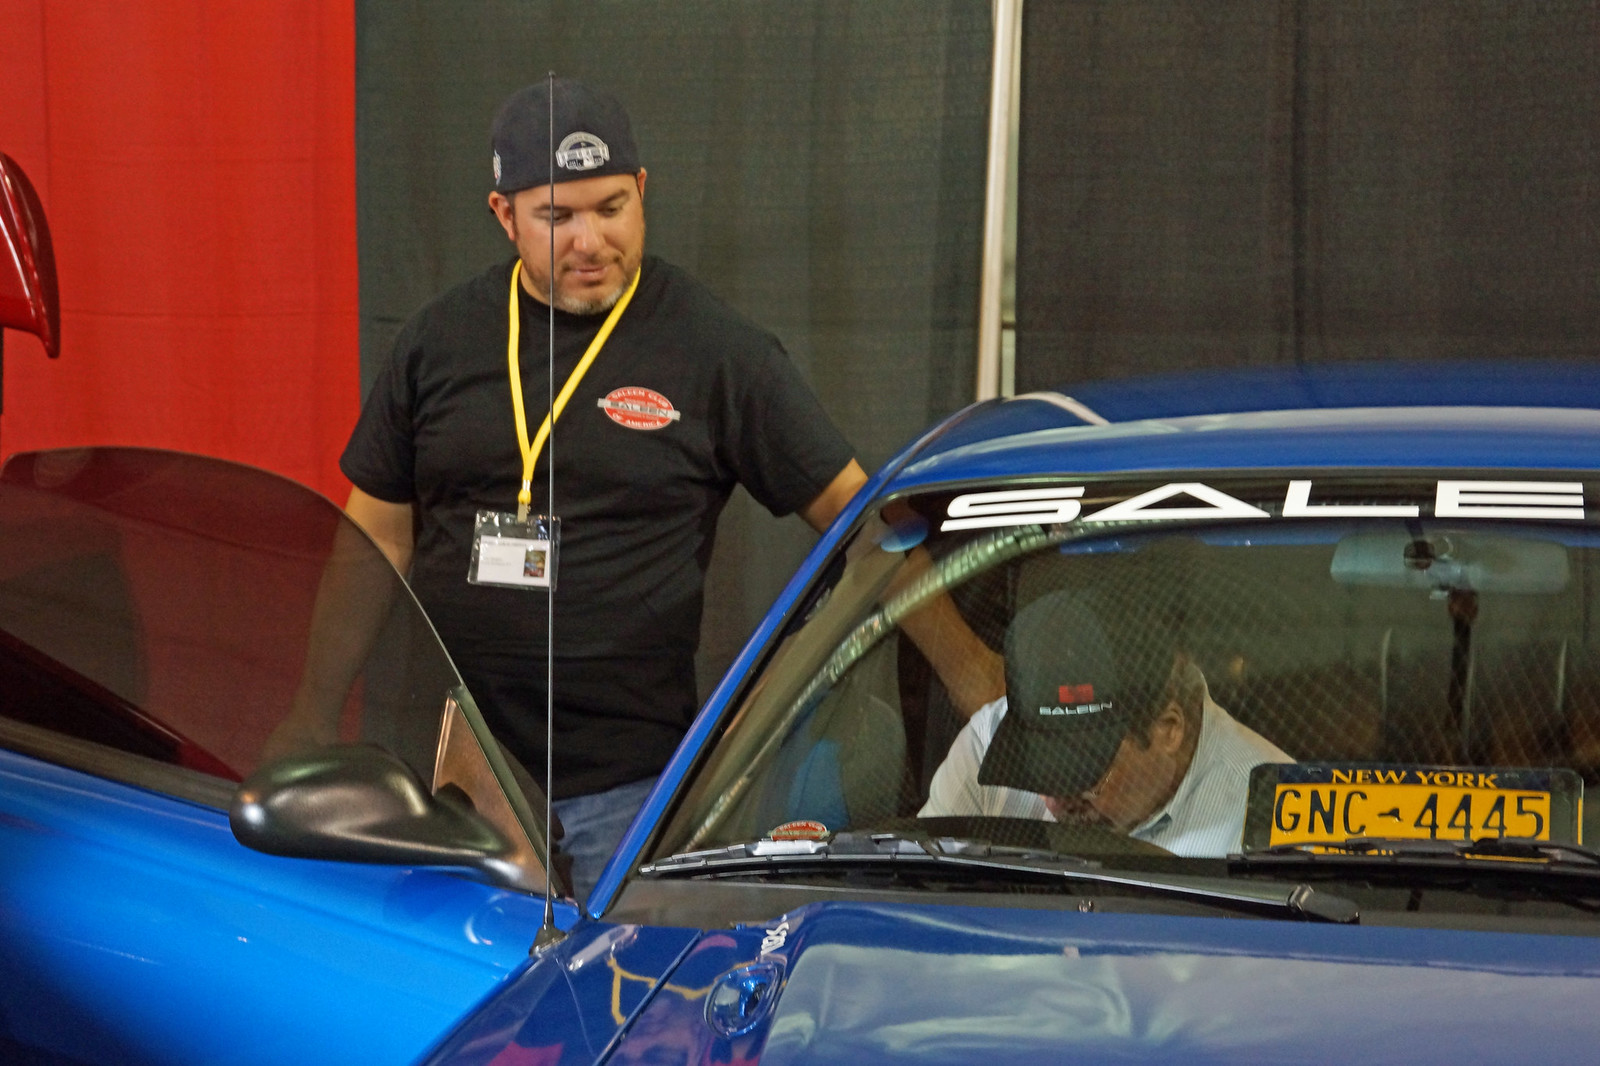 Saleen Nationals 2014 pictures 14626244219_3e0a8f73f6_h